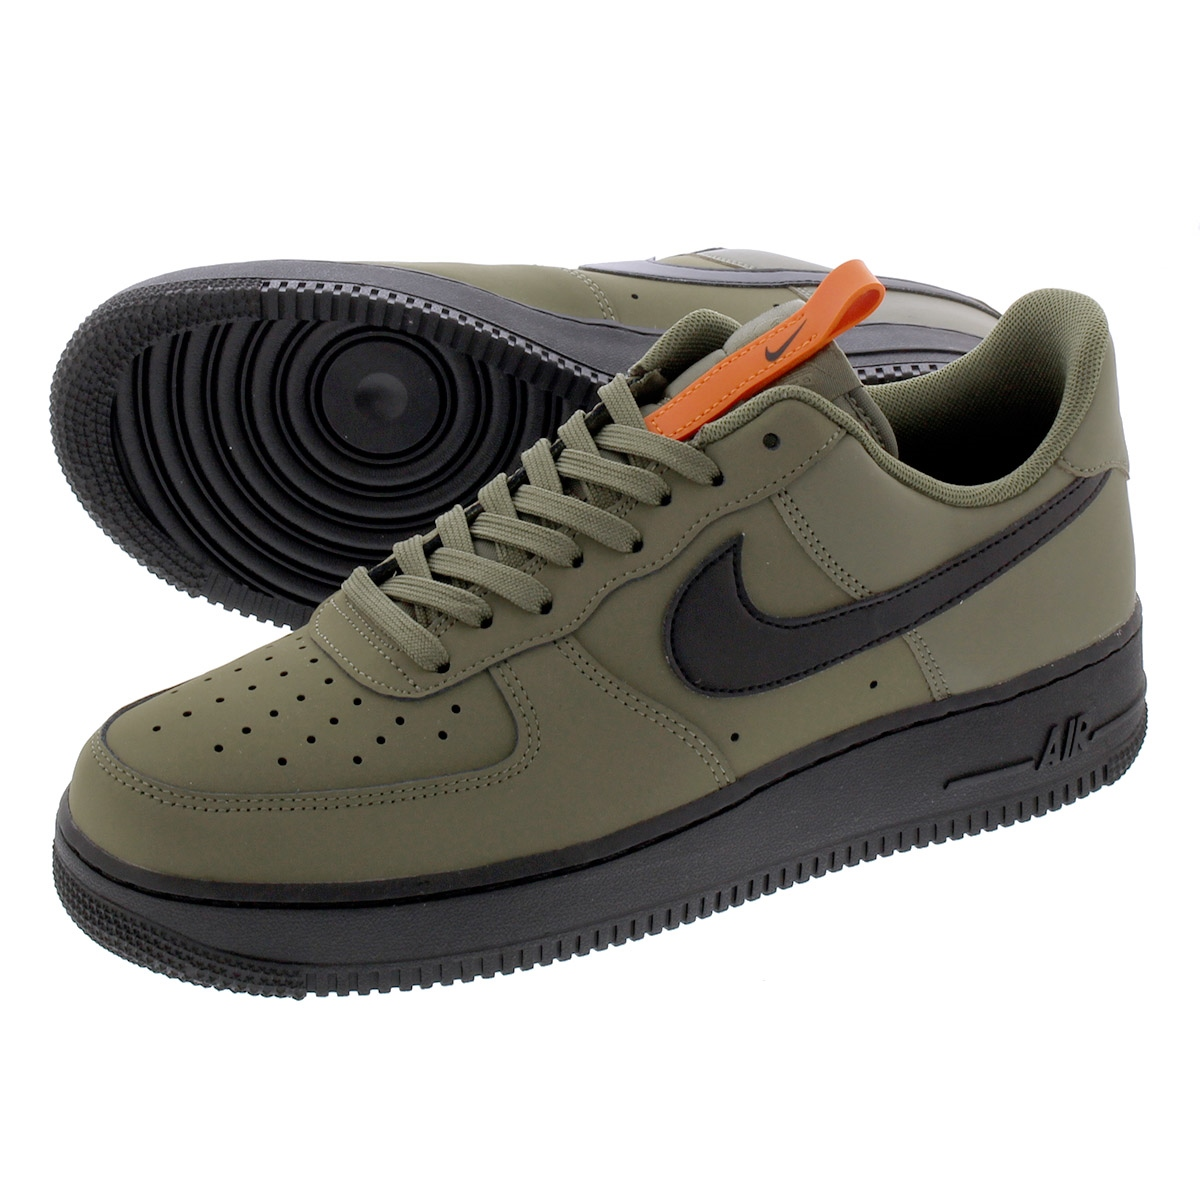 NIKE AIR FORCE 1 '07 Nike air force 1 07 MEDIUM OLIVEBLACKSTARFISH bq4326 200